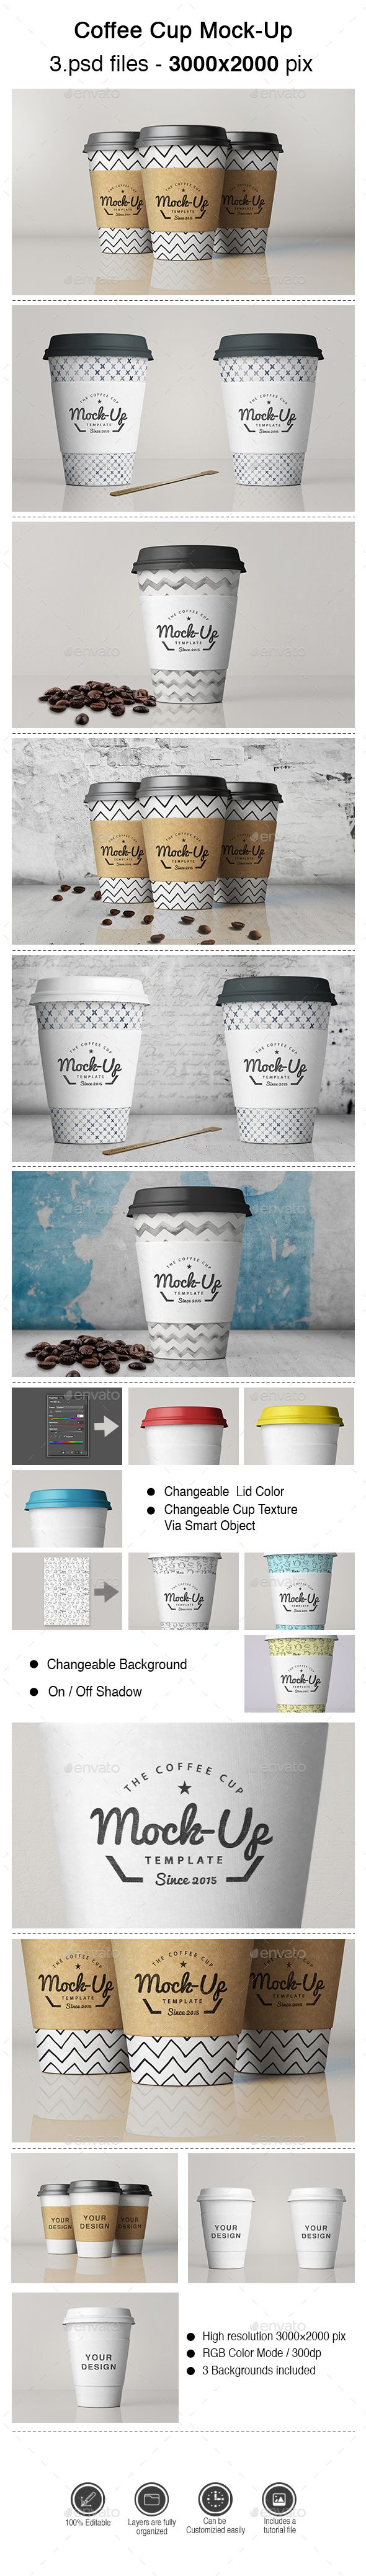 Coffee Cup MockUp — Photoshop PSD #realsitic #cup • Available here → https://graphicriver.net/item/coffee-cup-mockup/14085996?ref=pxcr